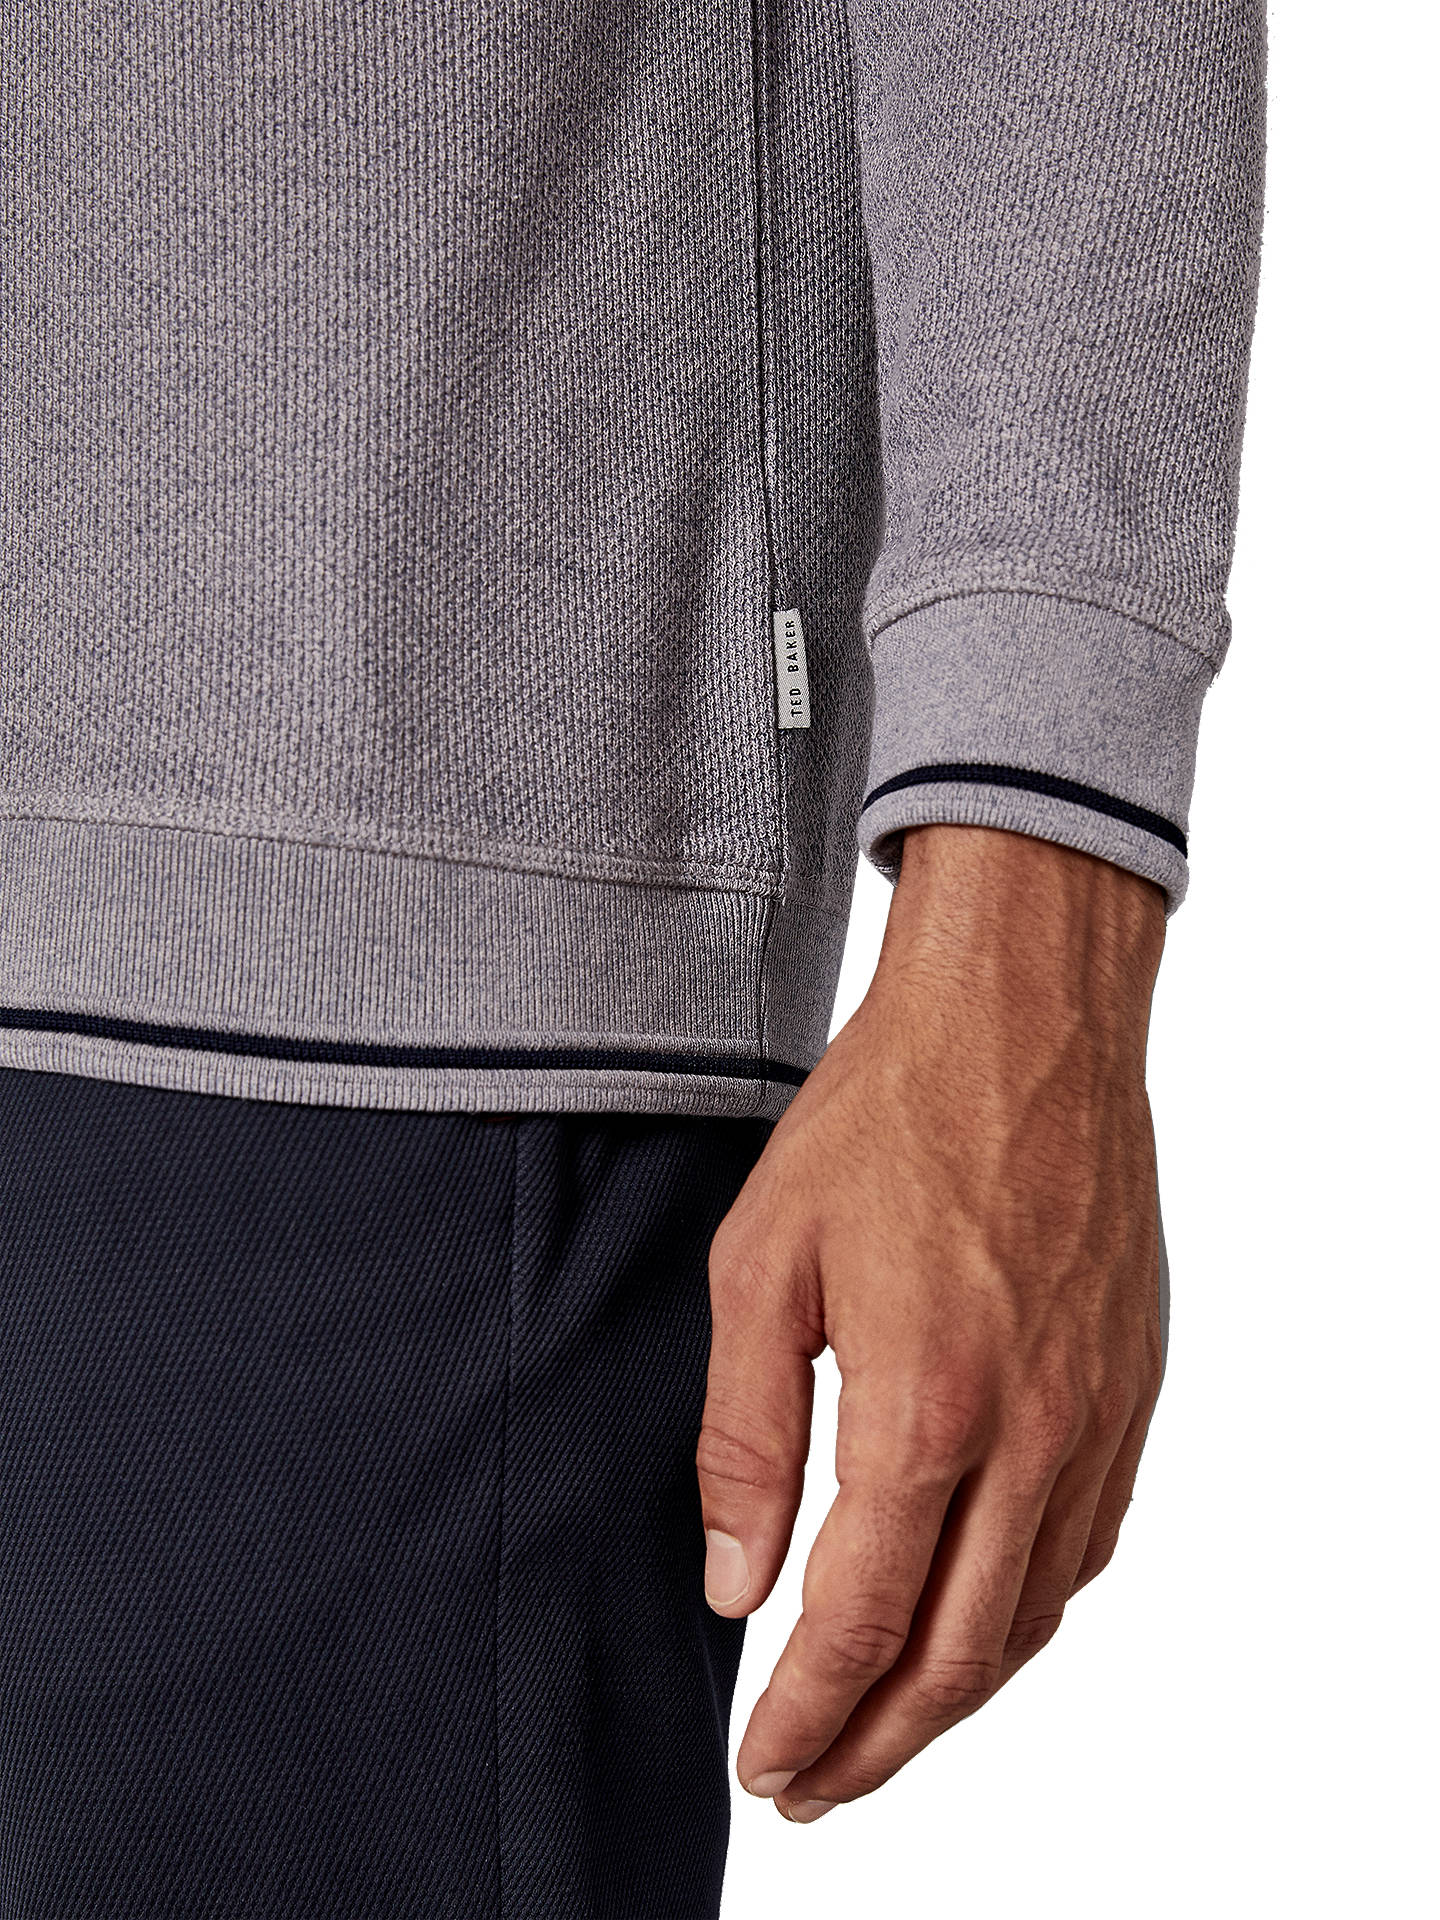 BuyTed Baker Thersty Sweatshirt, Purple Lilac, S Online at johnlewis.com